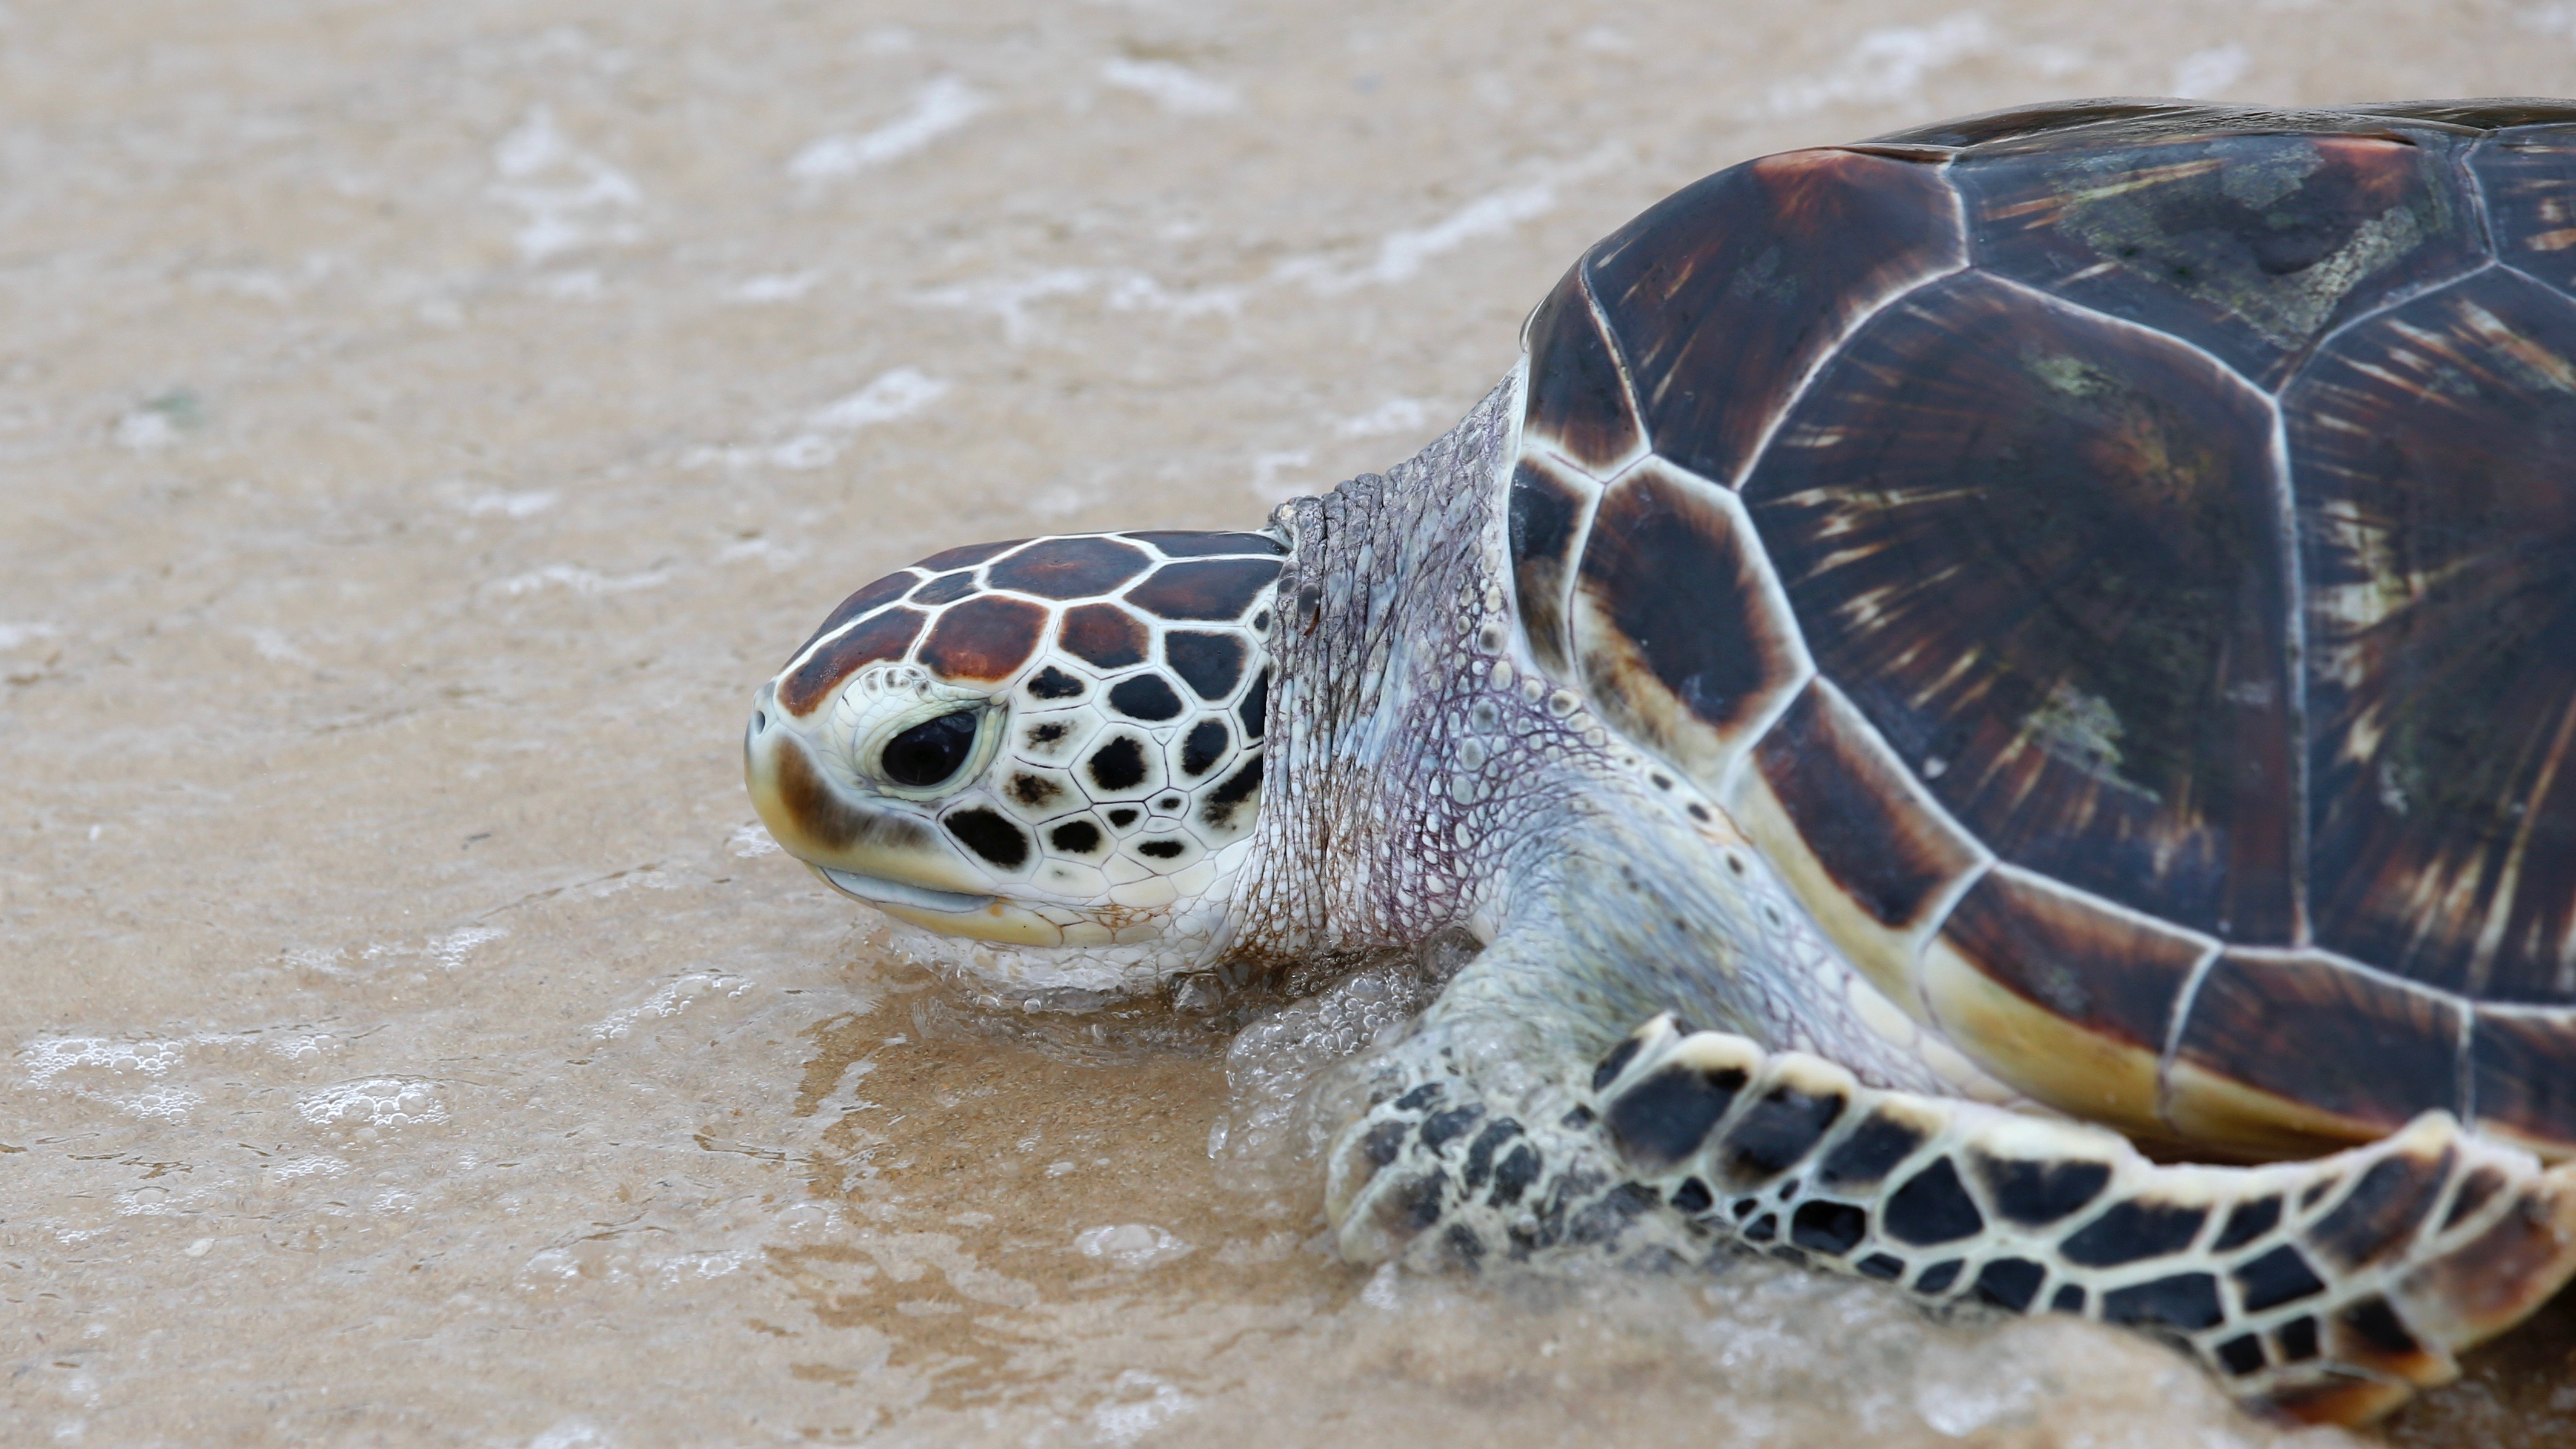 Turtles can teach us about evolution and survival.